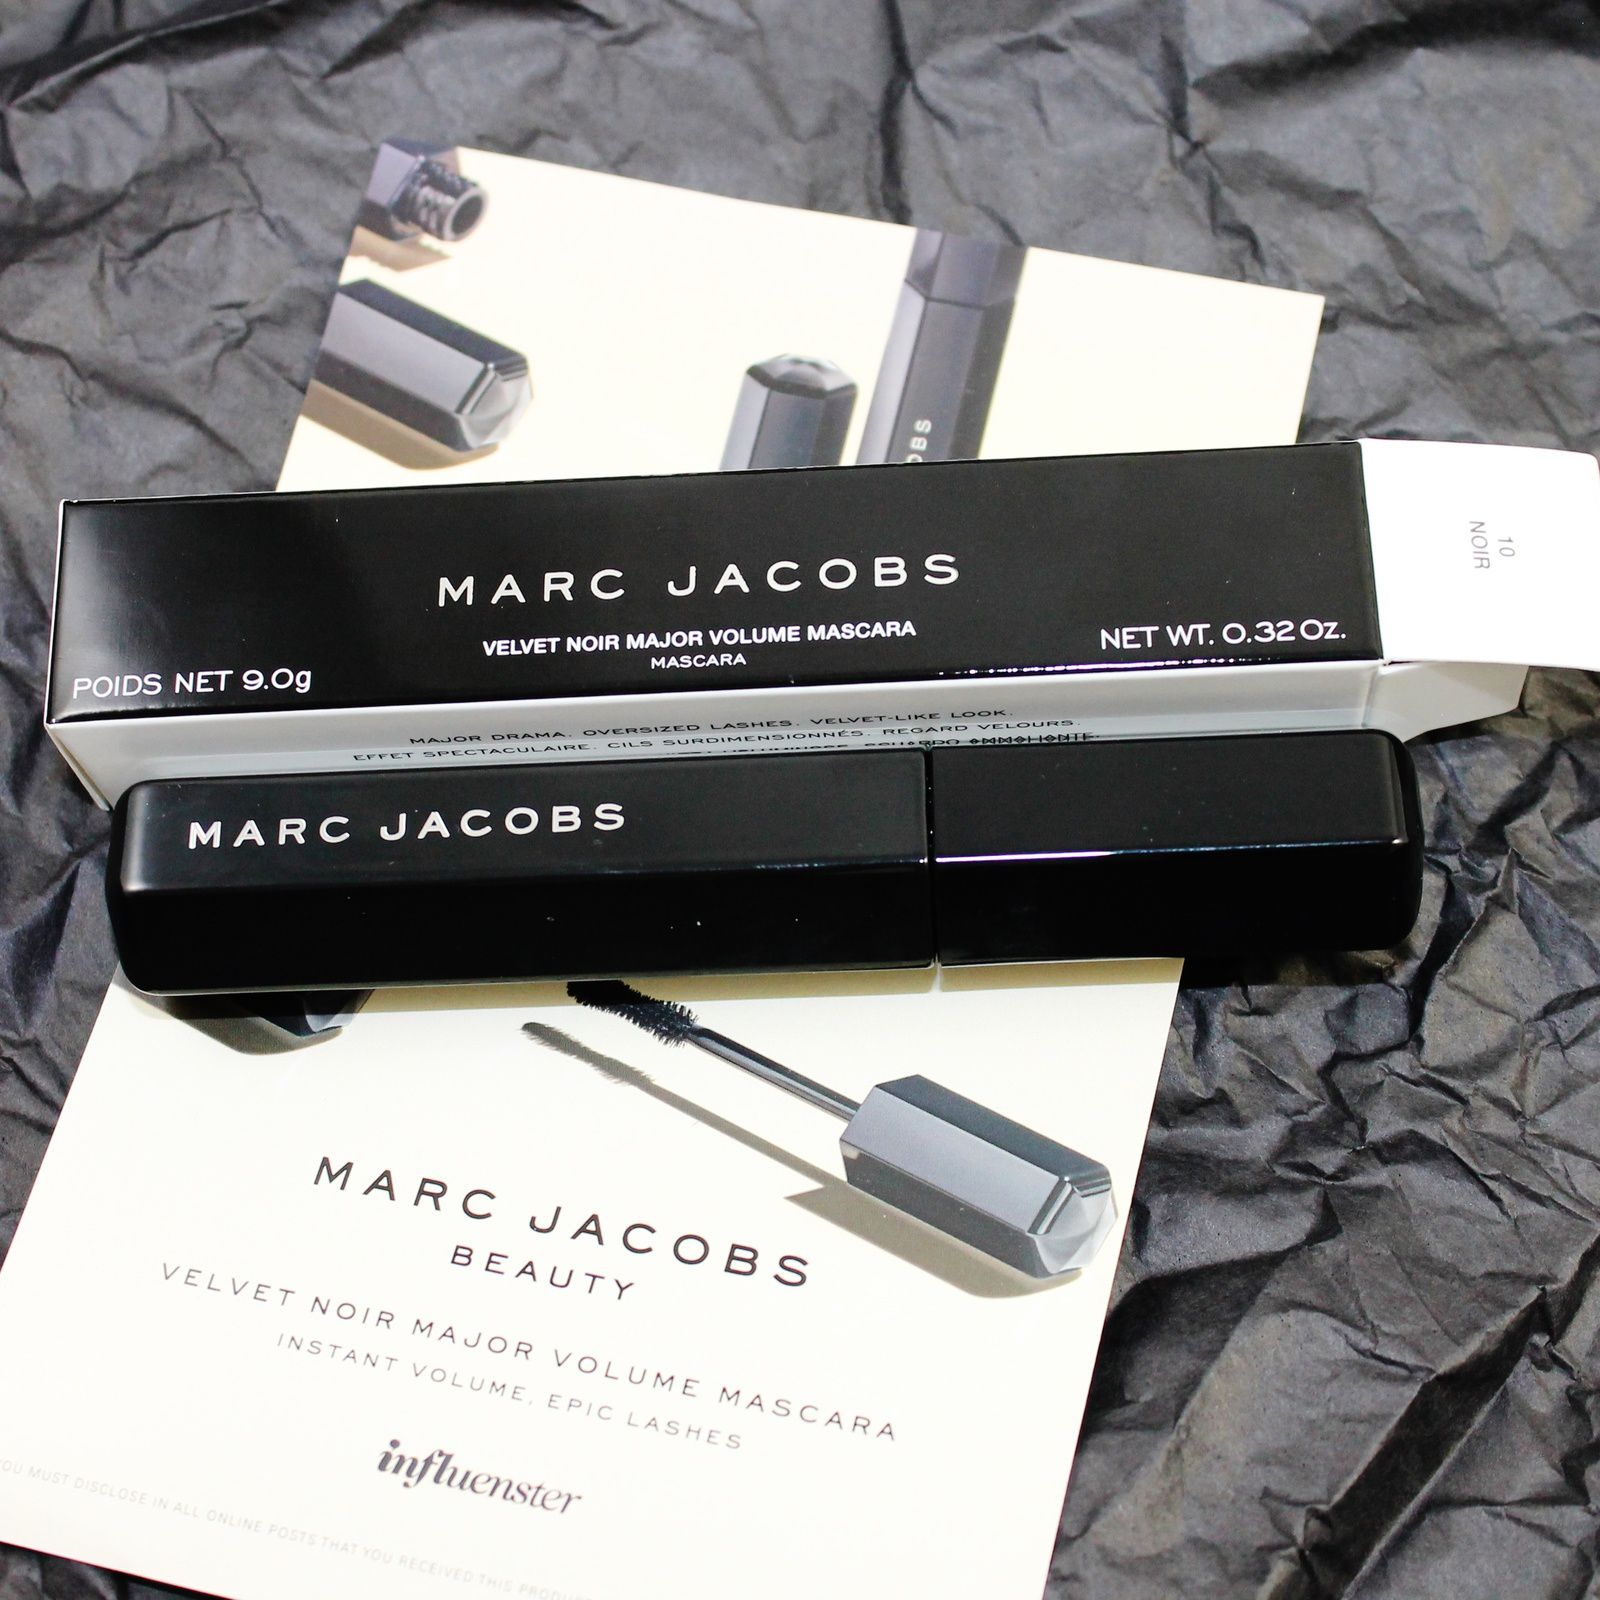 I received this product complimentary from Influenster & Marc Jacobs Beauty for testing purposes.